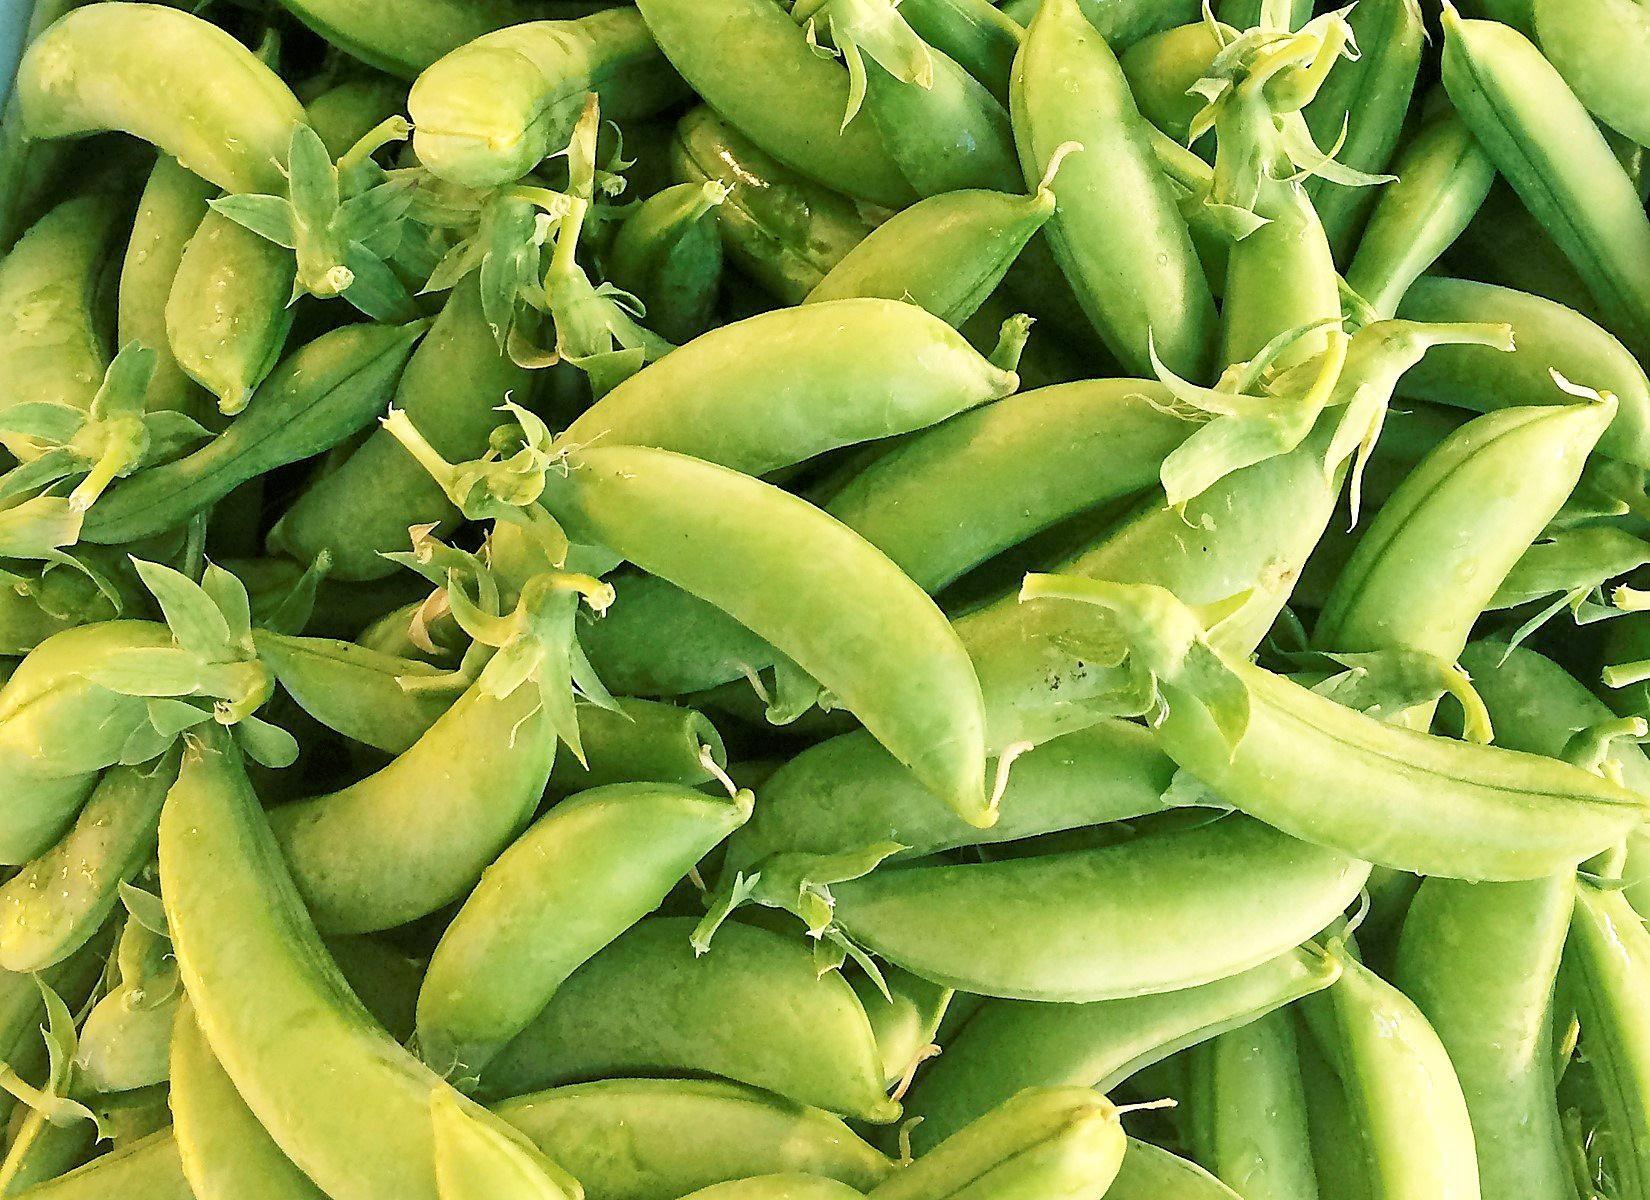 They're similar to the snowpea in that they have an edible pod, but they're a bit plumper, a bit sweeter, and have a bigger pea inside. PHOTO: KATE O'NEILL